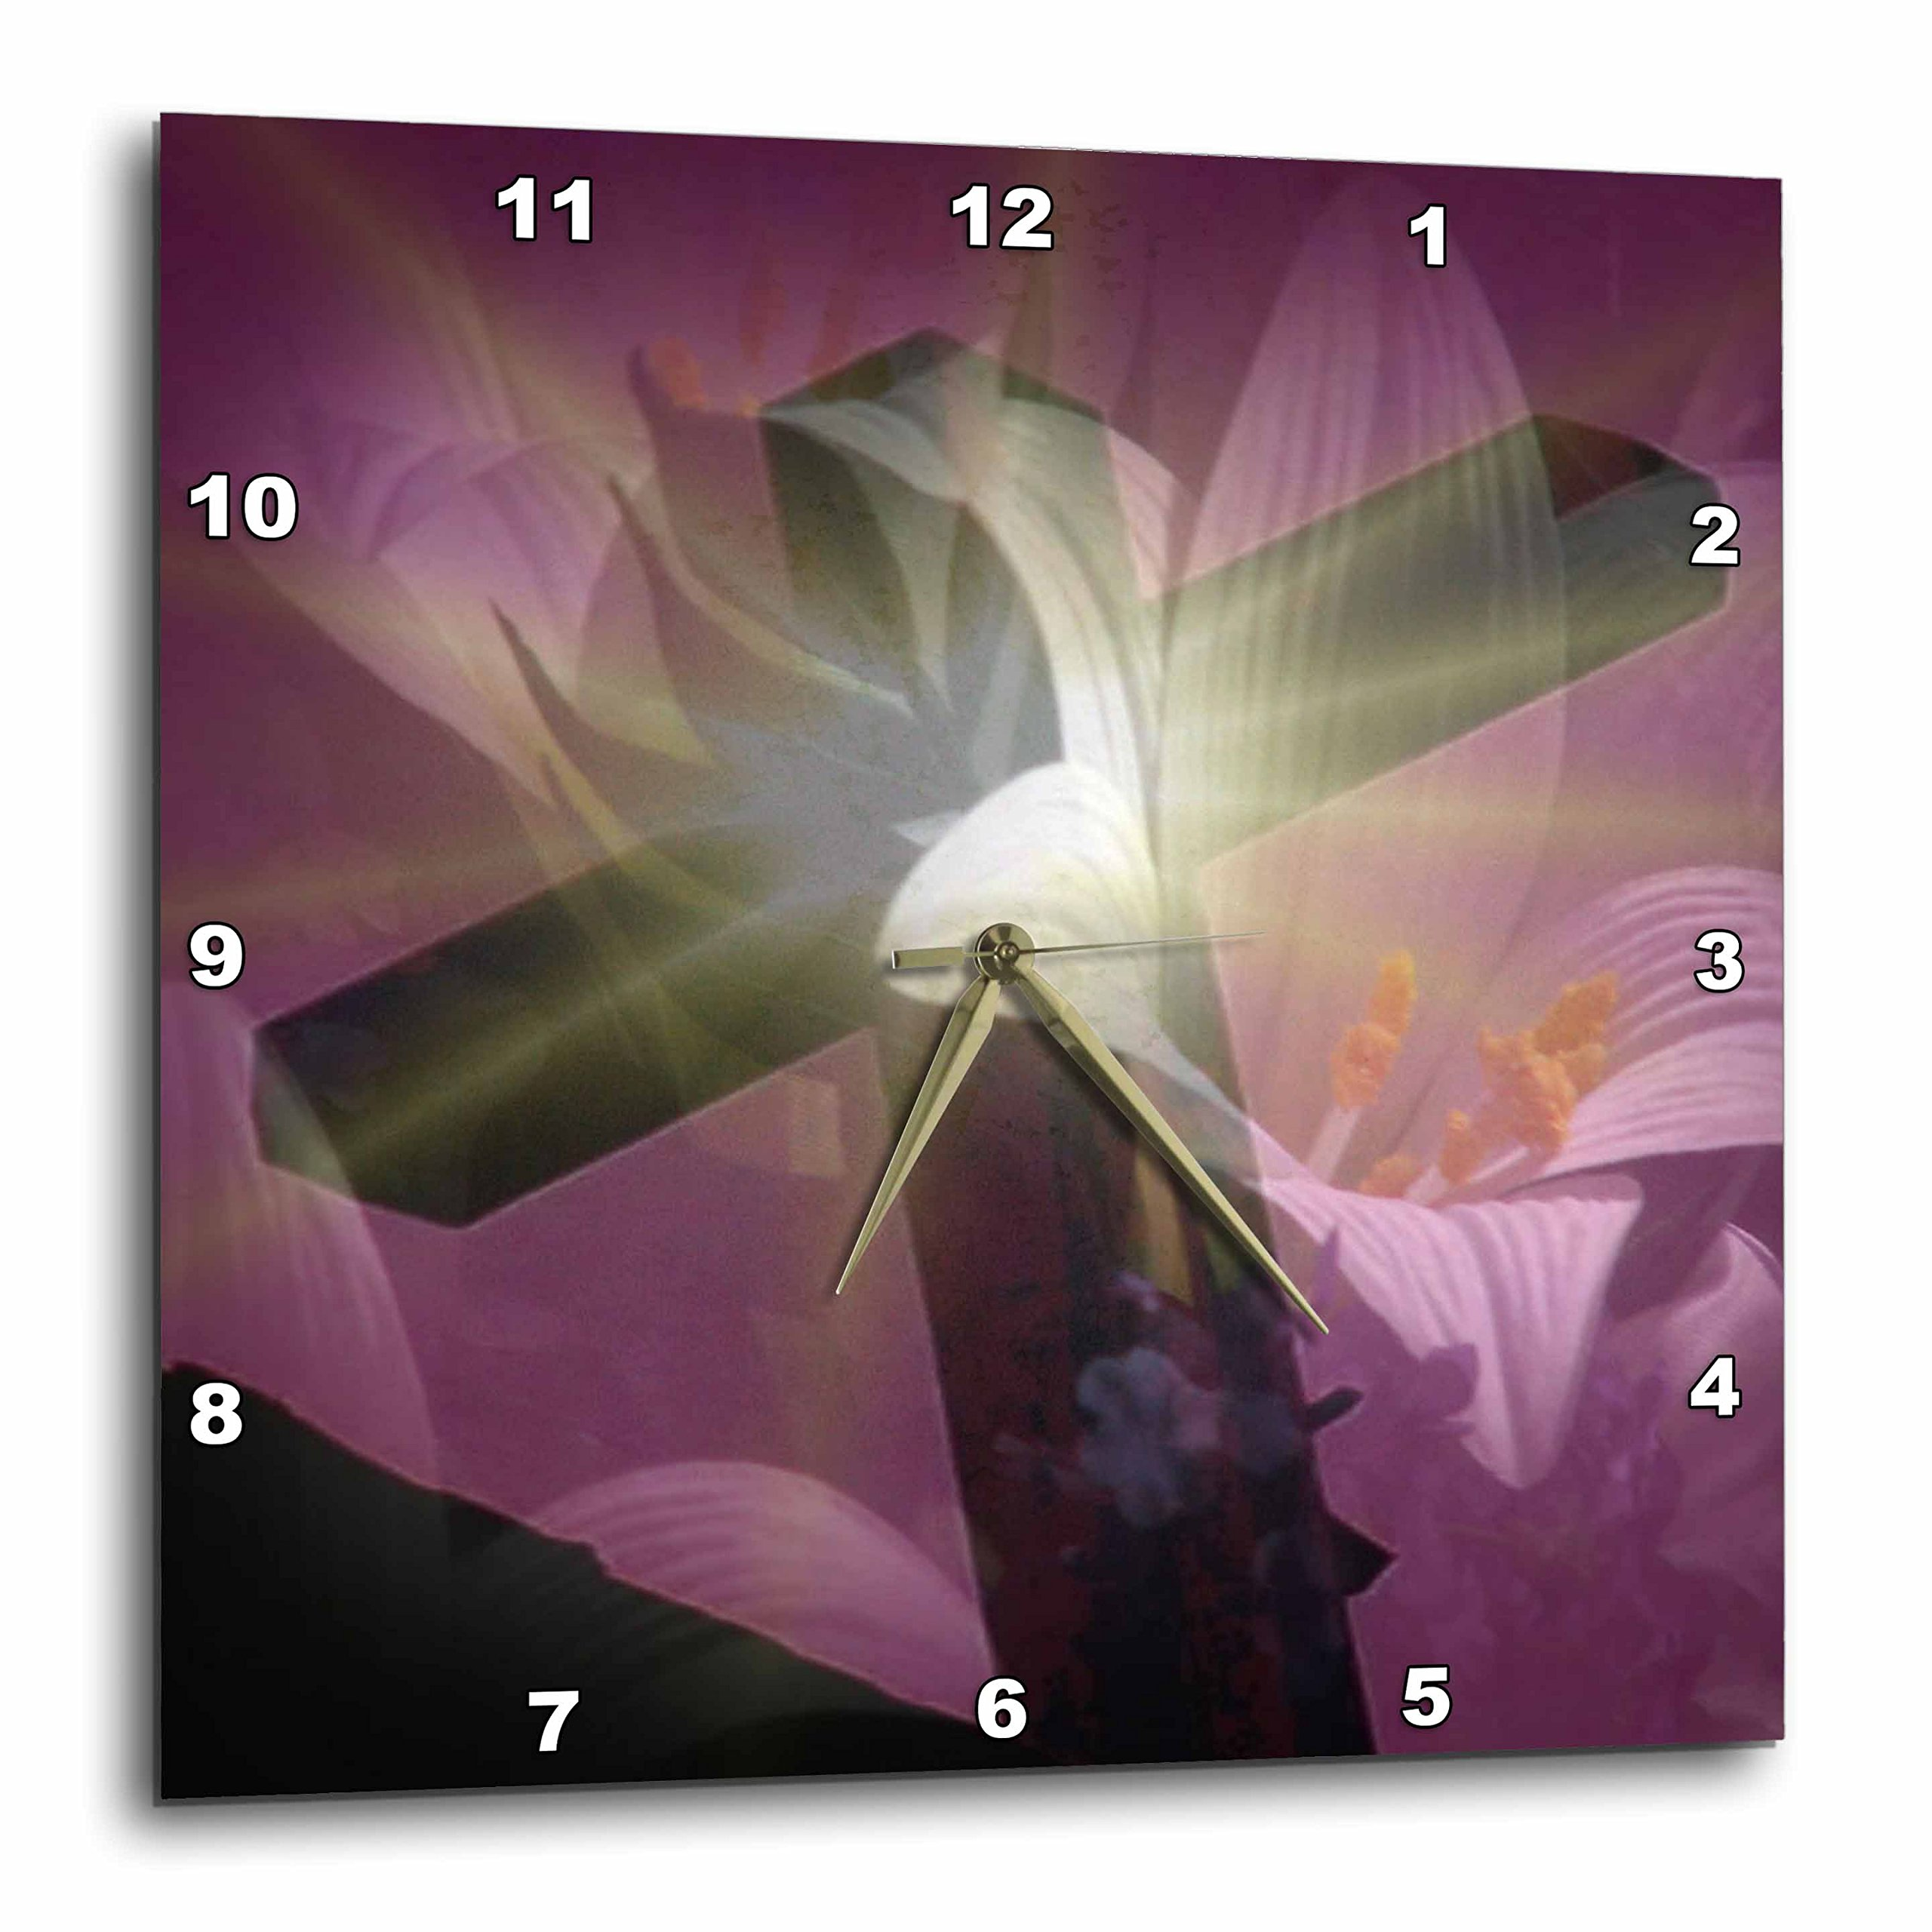 3dRose dpp_42952_1 Christian Cross and Lily-Wall Clock, 10 by 10-Inch